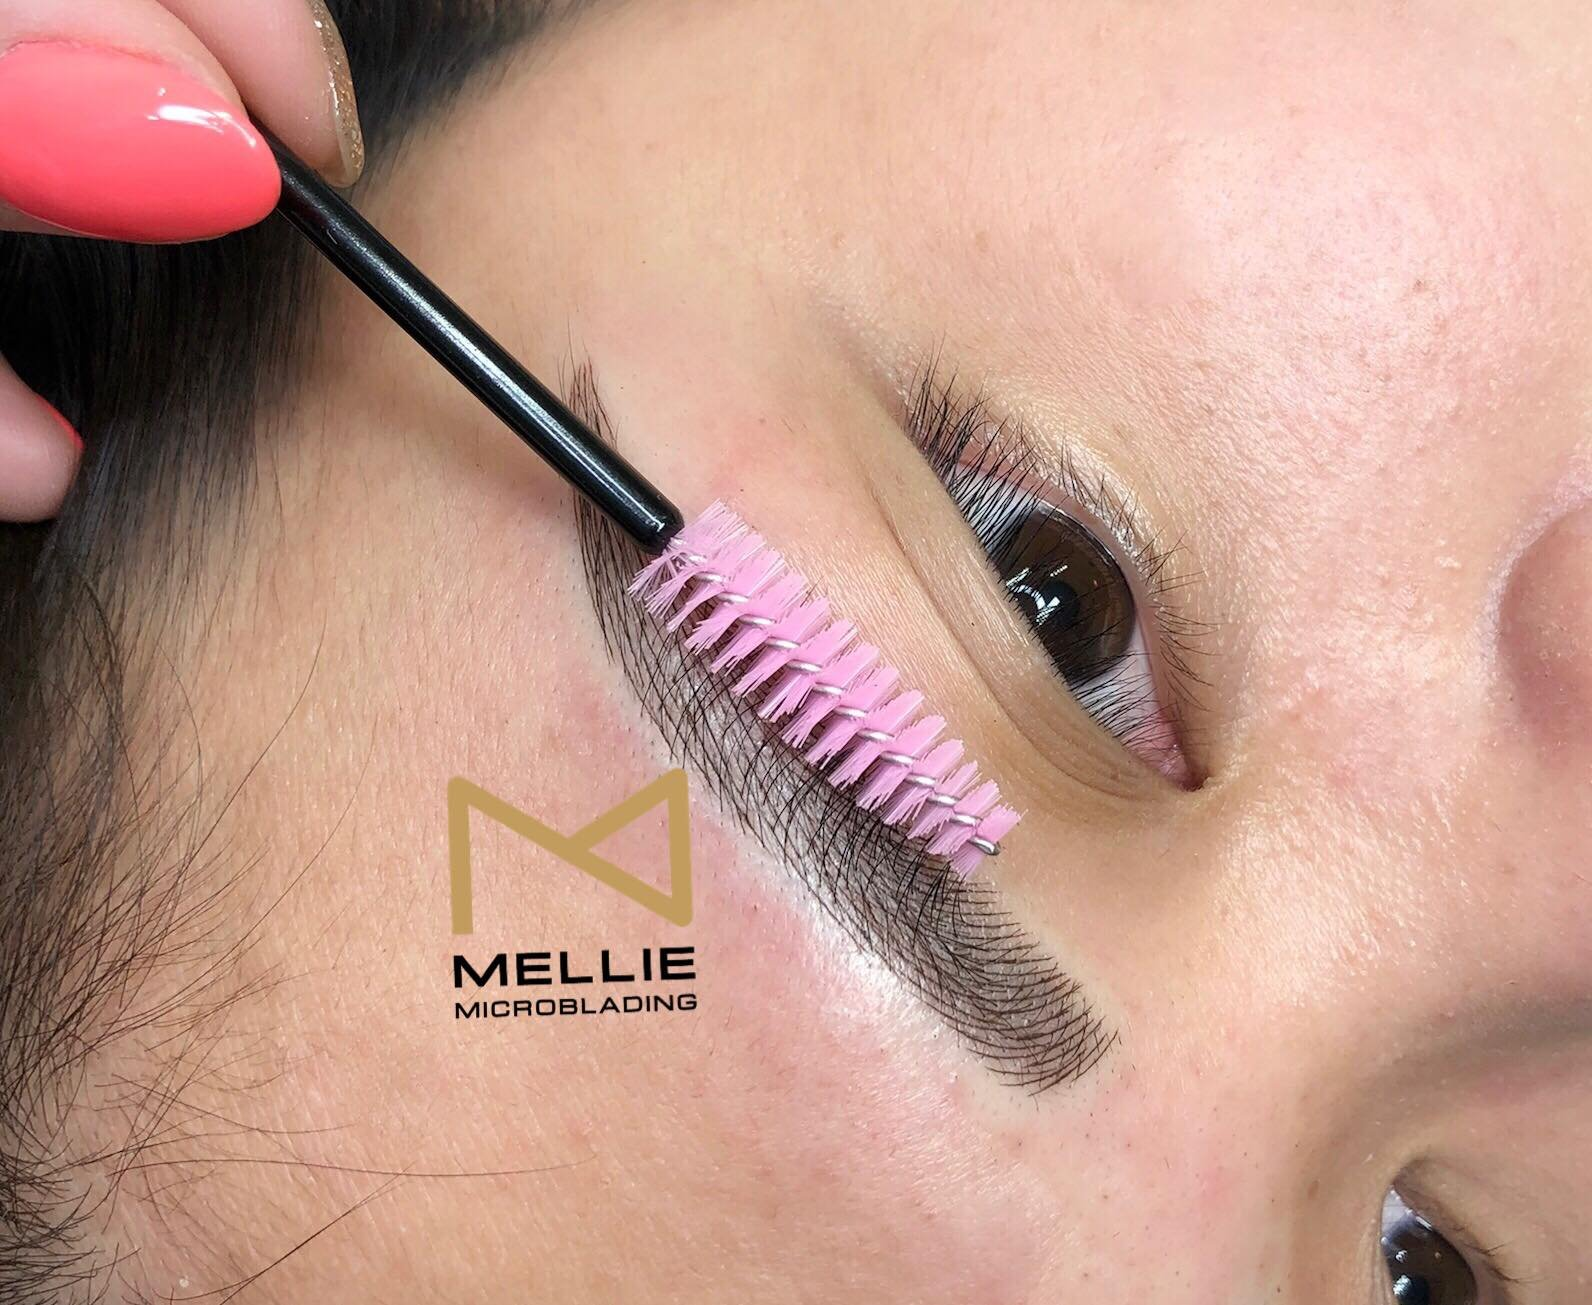 Mellie Microblading Disposable Microblading Pen U18 Blade with Pigment Sponge 10 PCS